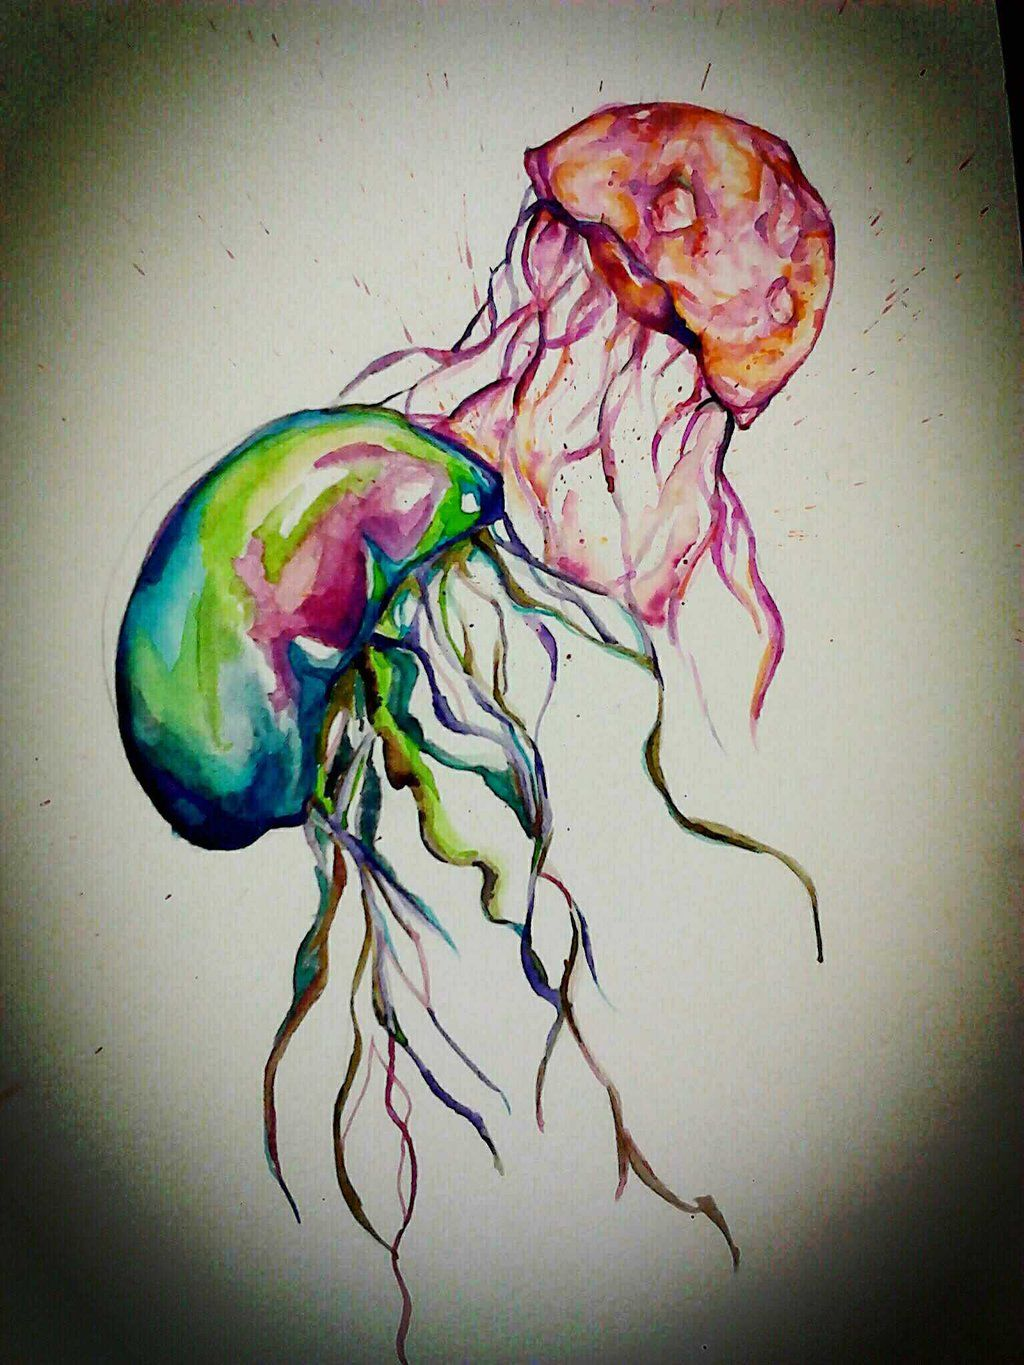 Oooooo watercolor jelly jellyfish color my world for Jelly fish painting